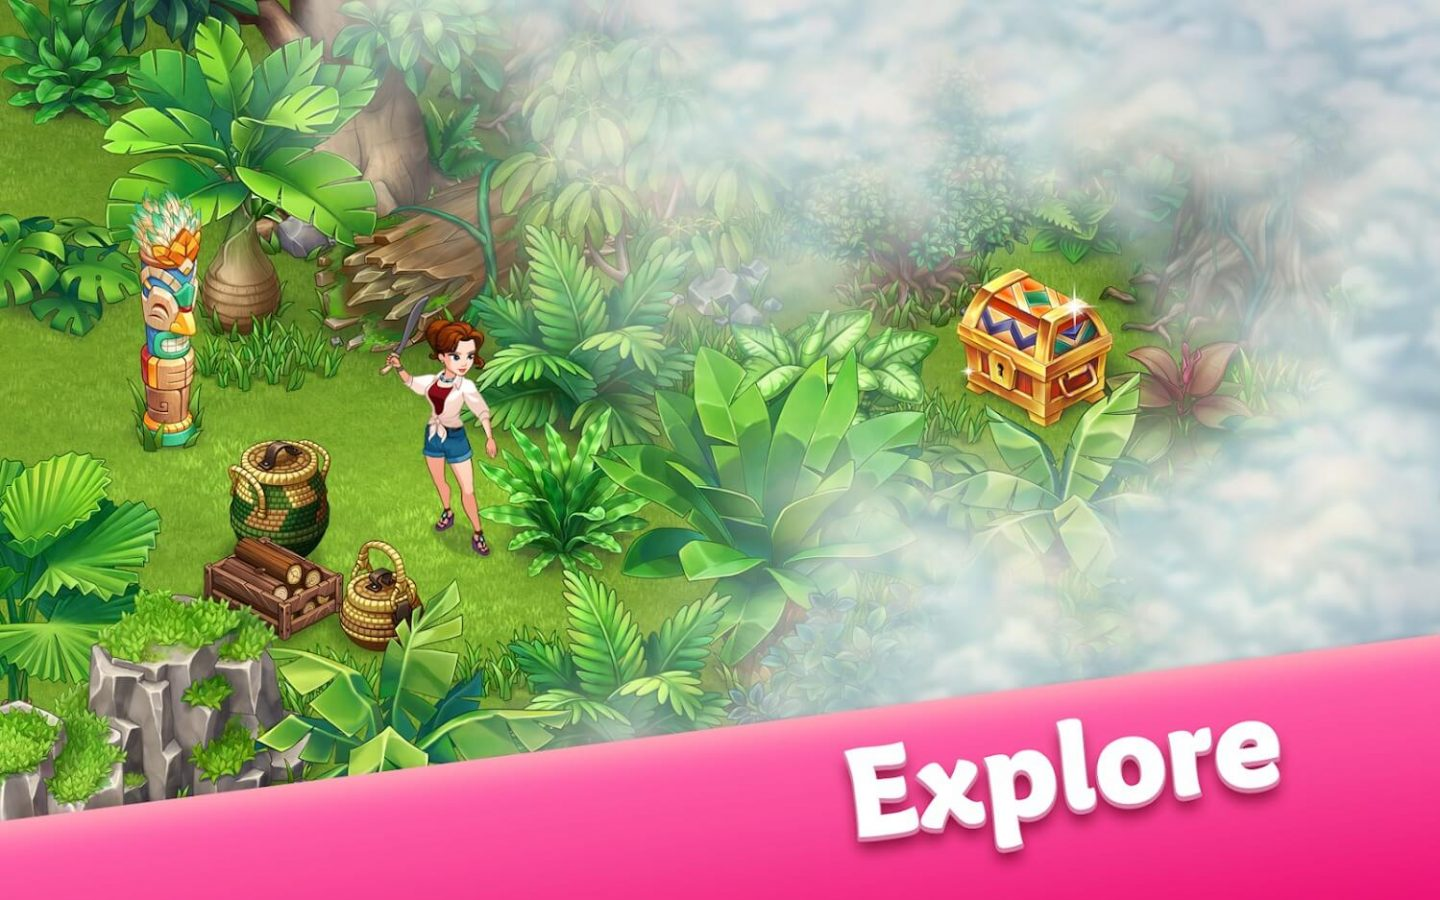 Taonga Island Adventure for Android 1440x900